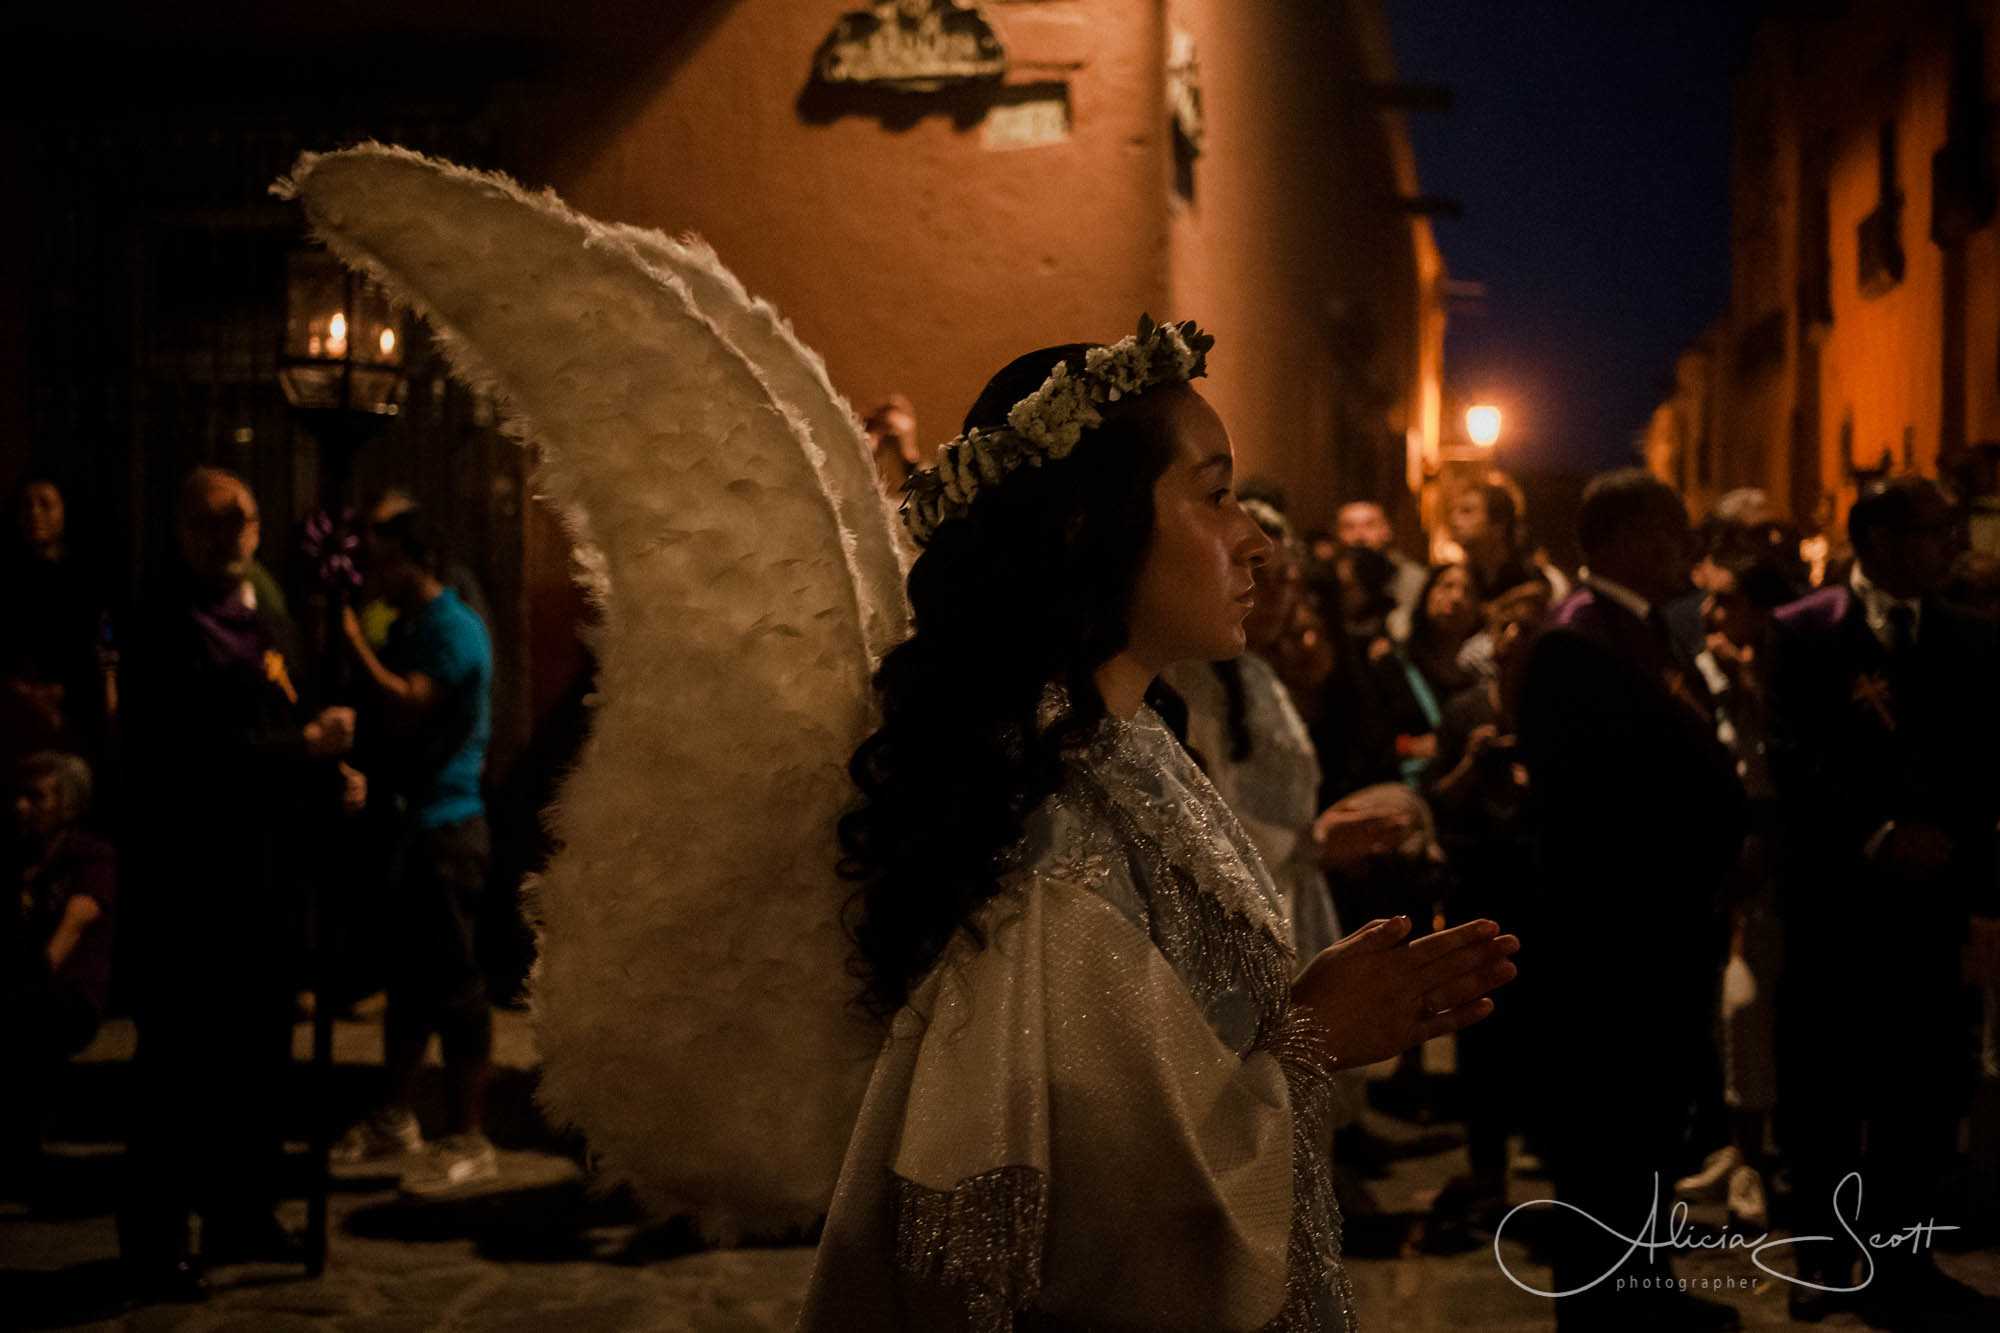 Angelita during the Easter Procession of the Holy Burial - part of Semana Santa (or Holy Week) in San Miguel de Allende, Mexico